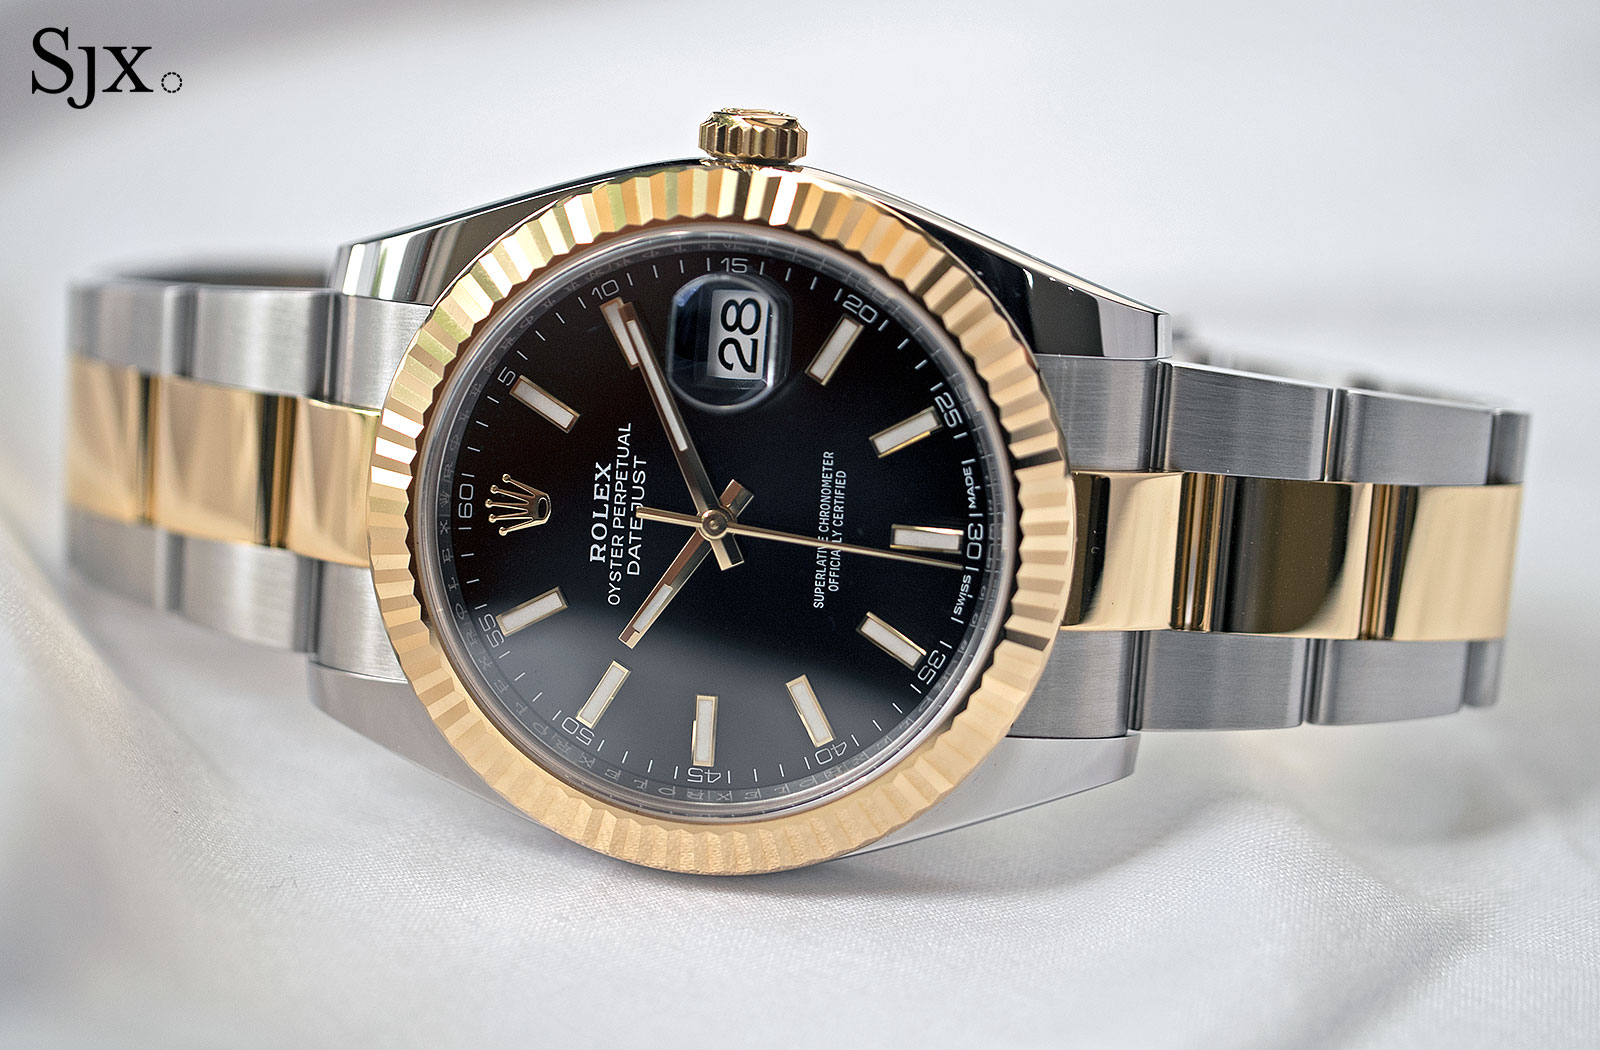 Hands-On with the Rolex Datejust 41 Rolesor